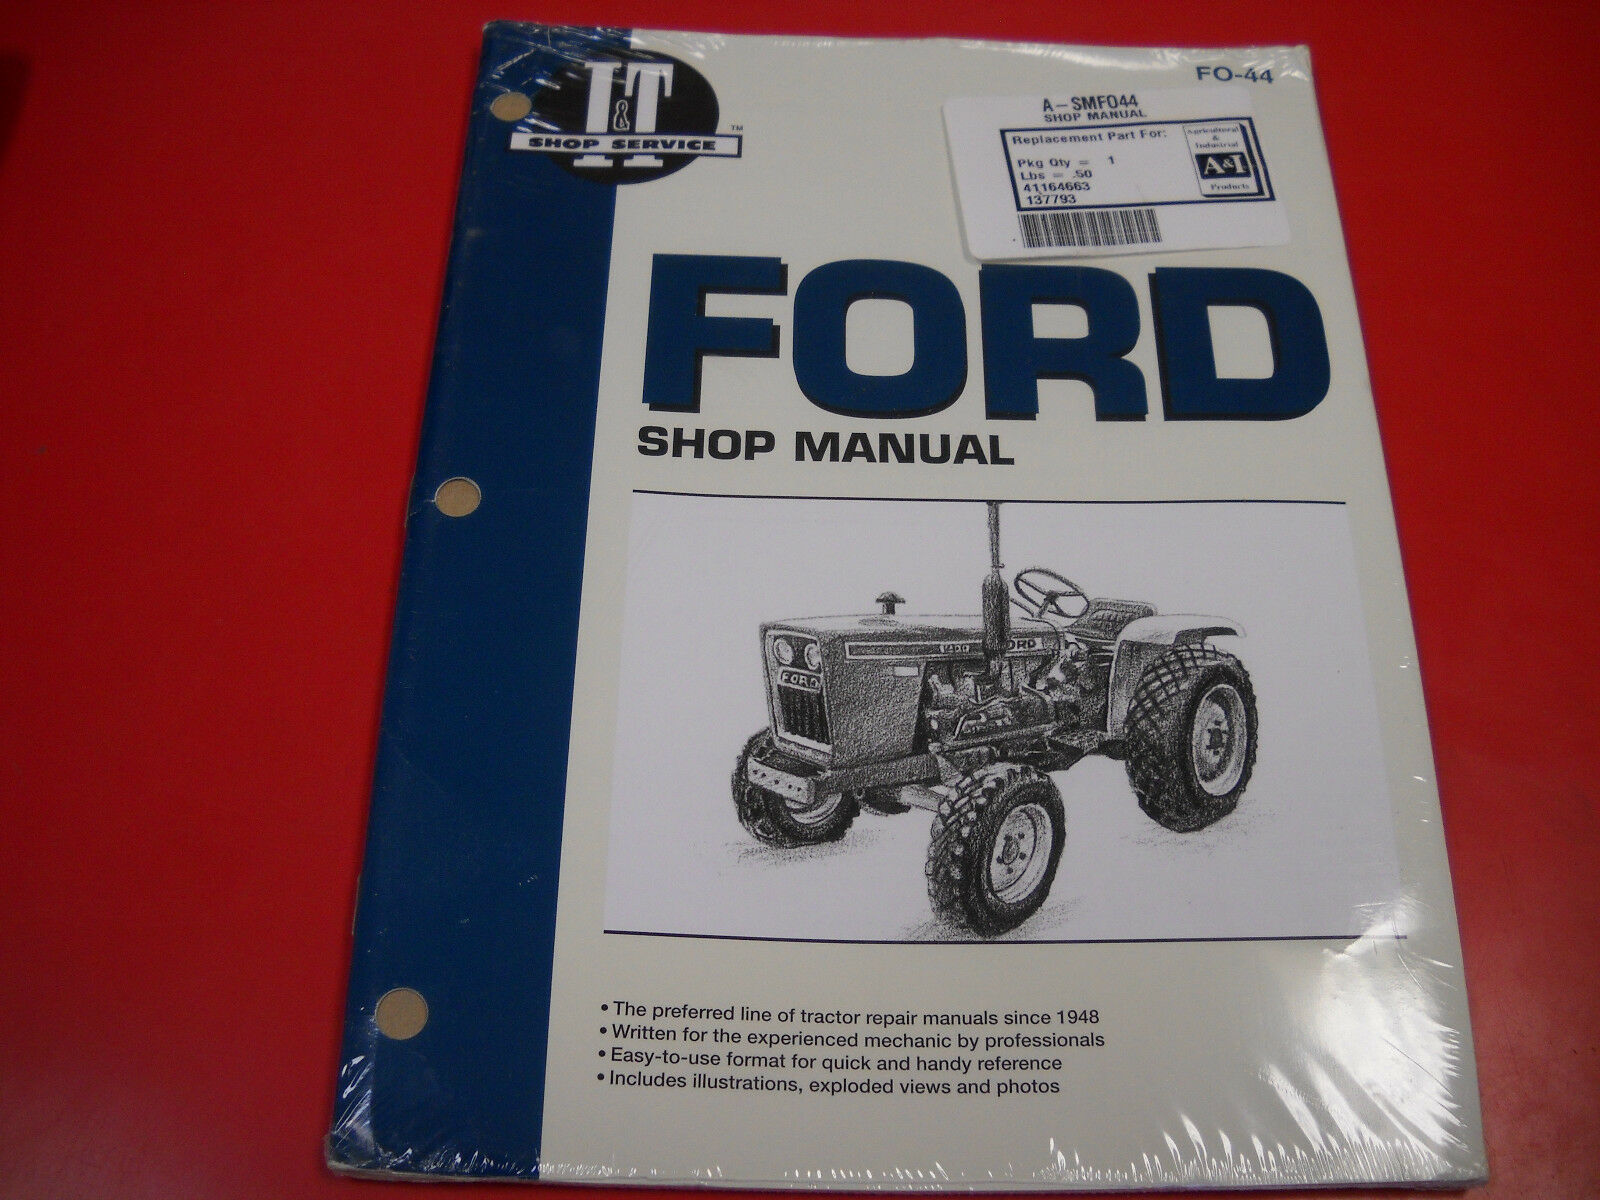 Ford Tractor I&T Shop Service Manual 1100 1200 1300 1510 1700 1910 2110  FO44 1 of 2Only 1 available ...